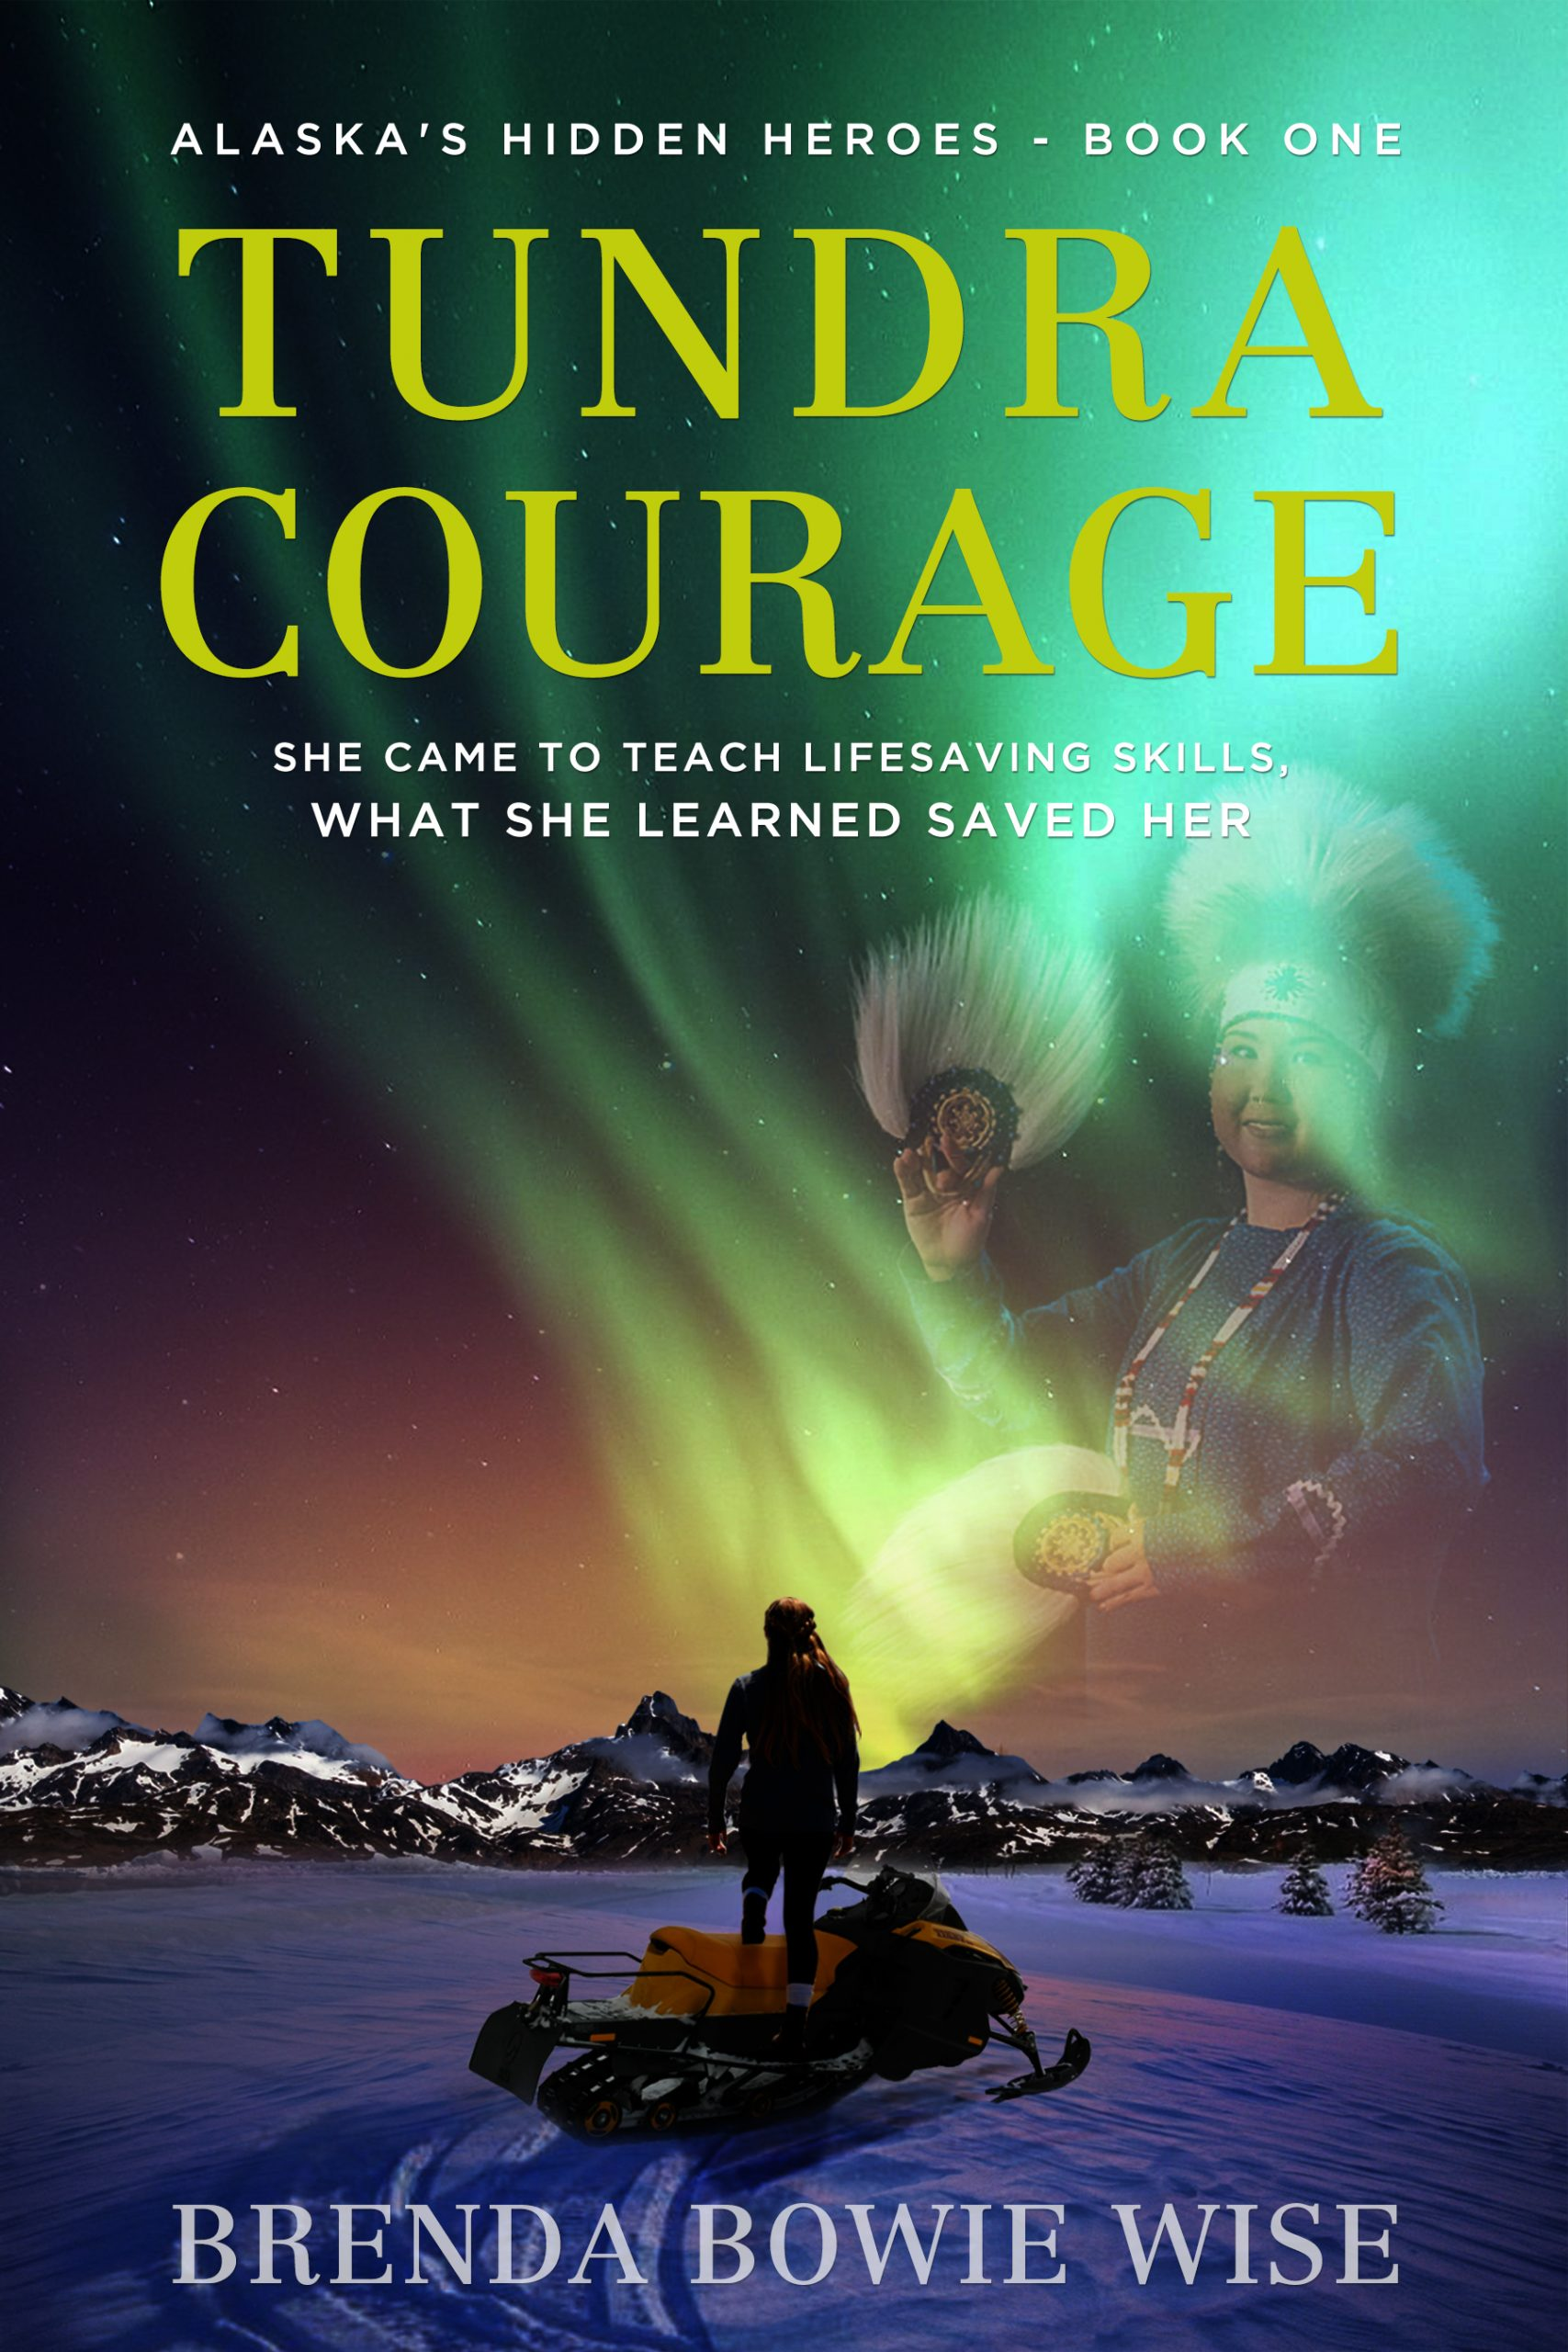 Tundra Courage by Brenda Bowie Wise